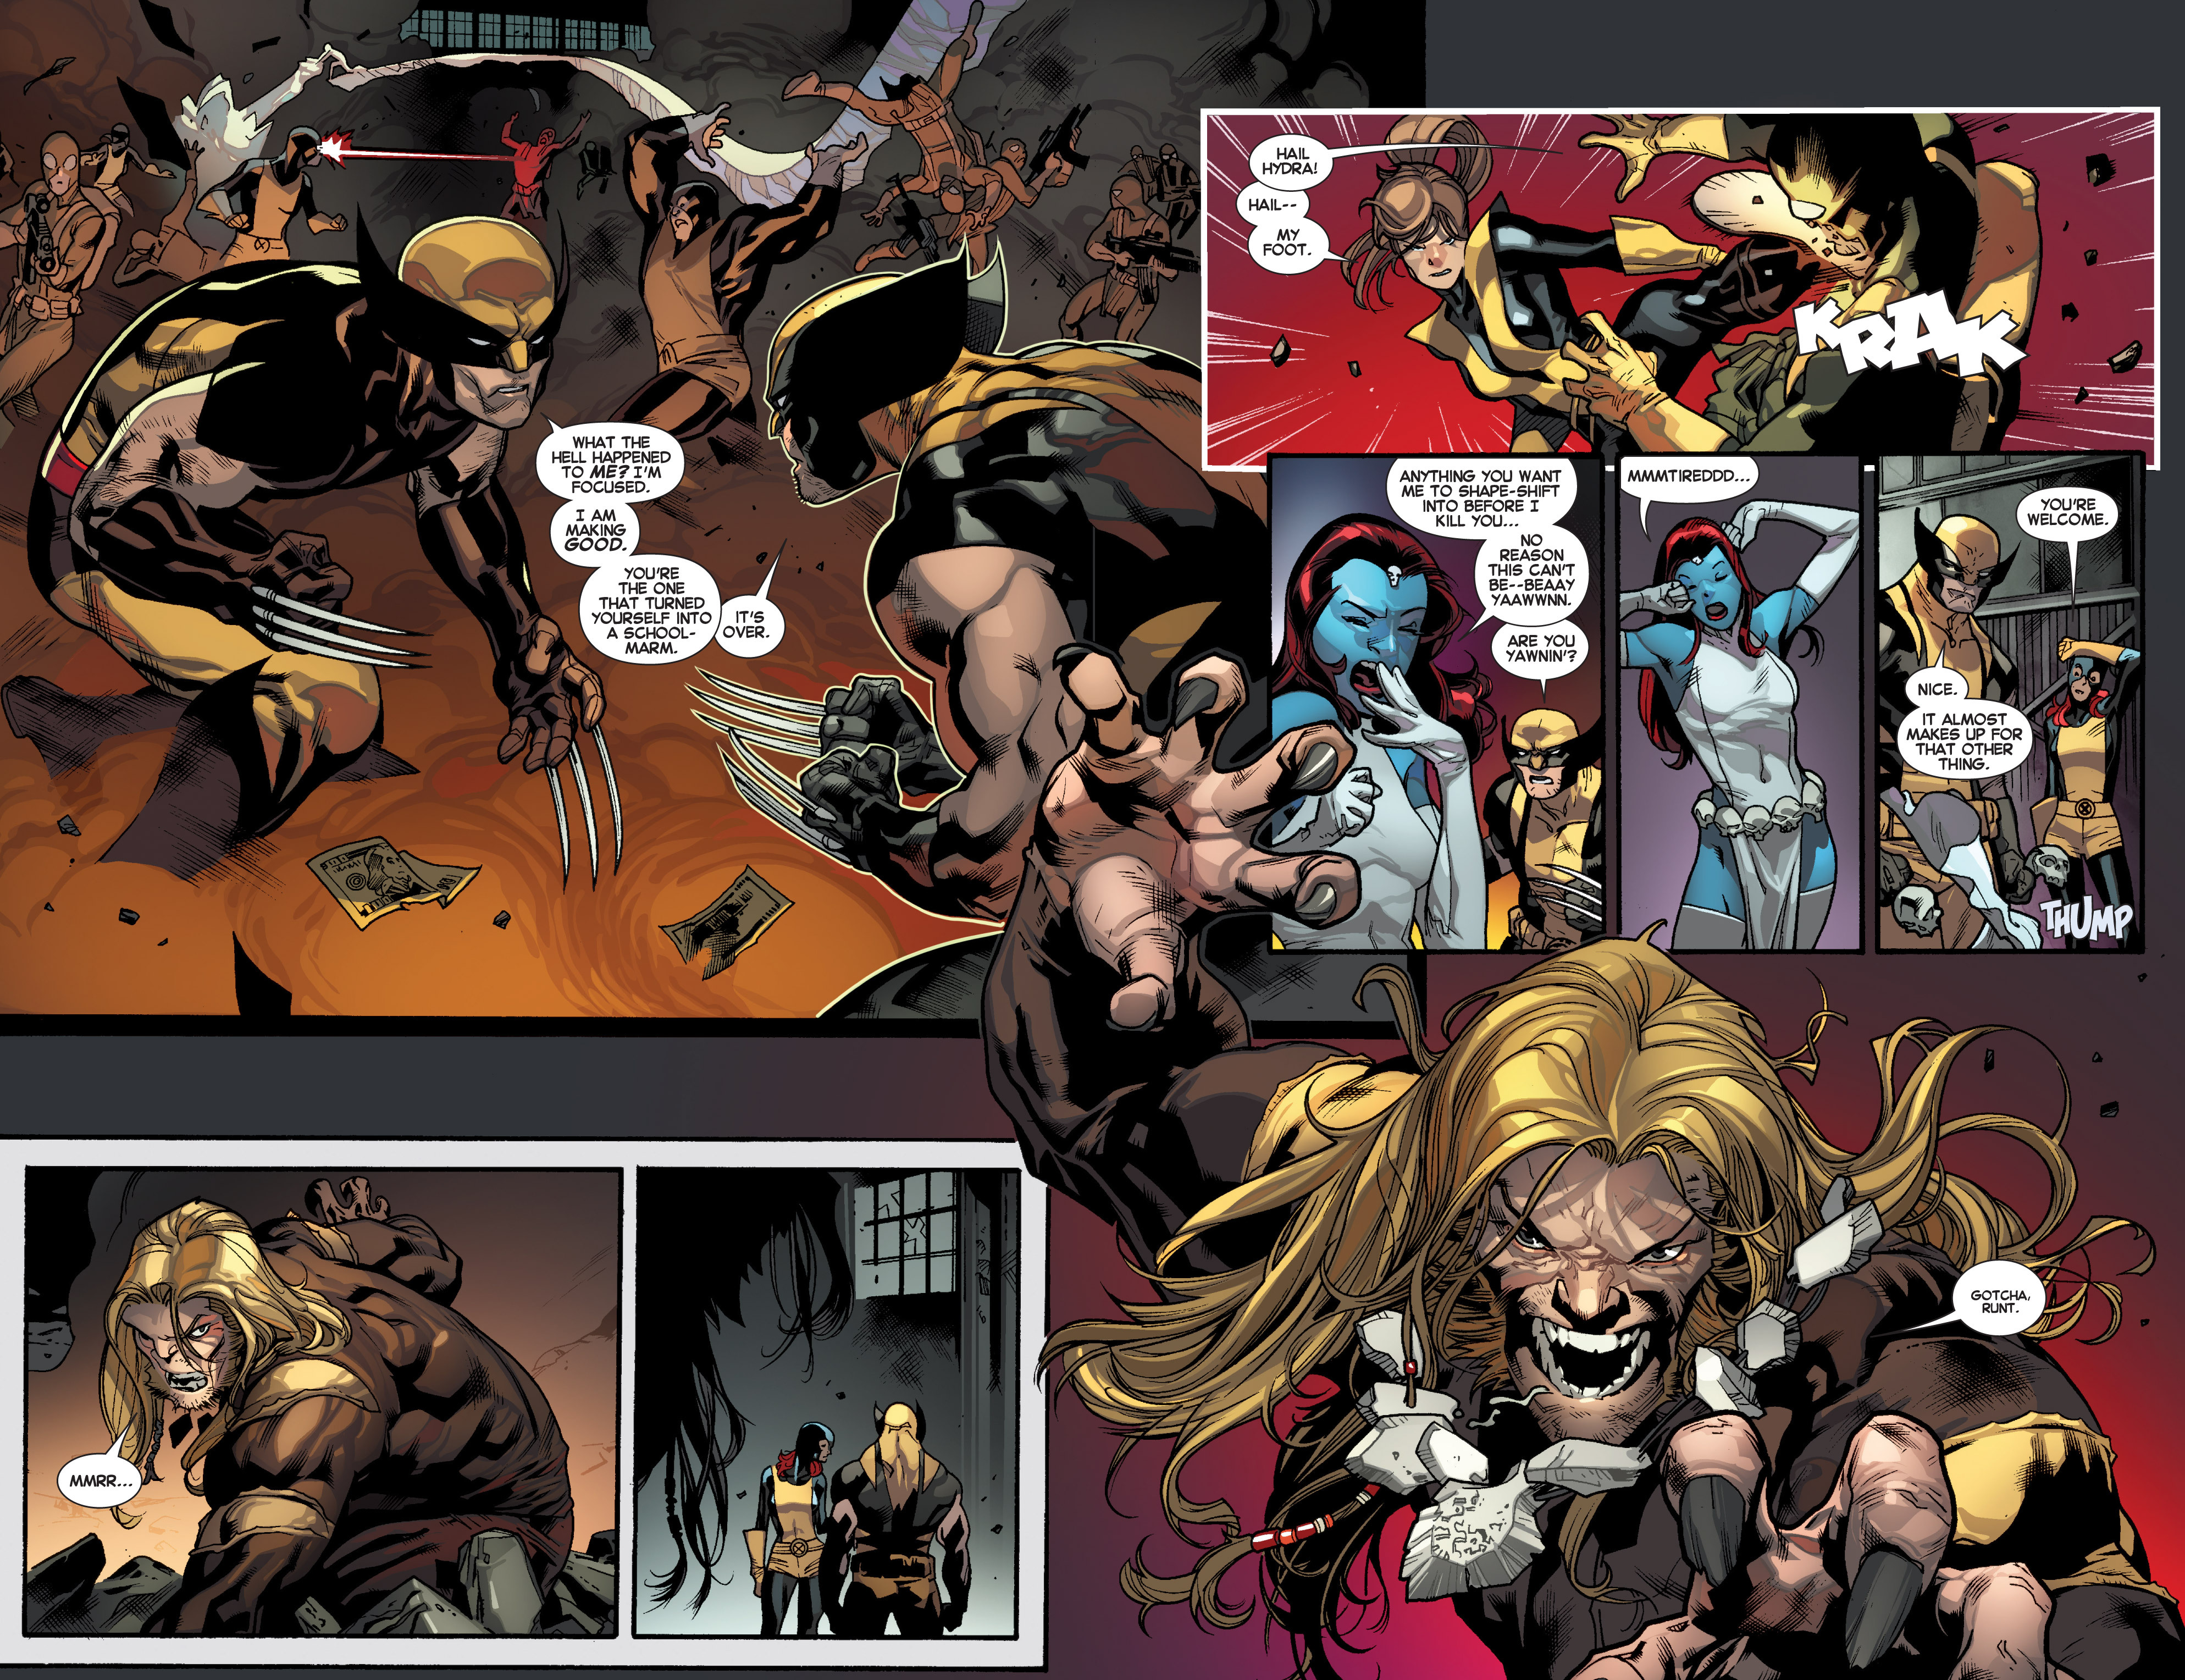 Read online All-New X-Men (2013) comic -  Issue # _Special - Out Of Their Depth - 78